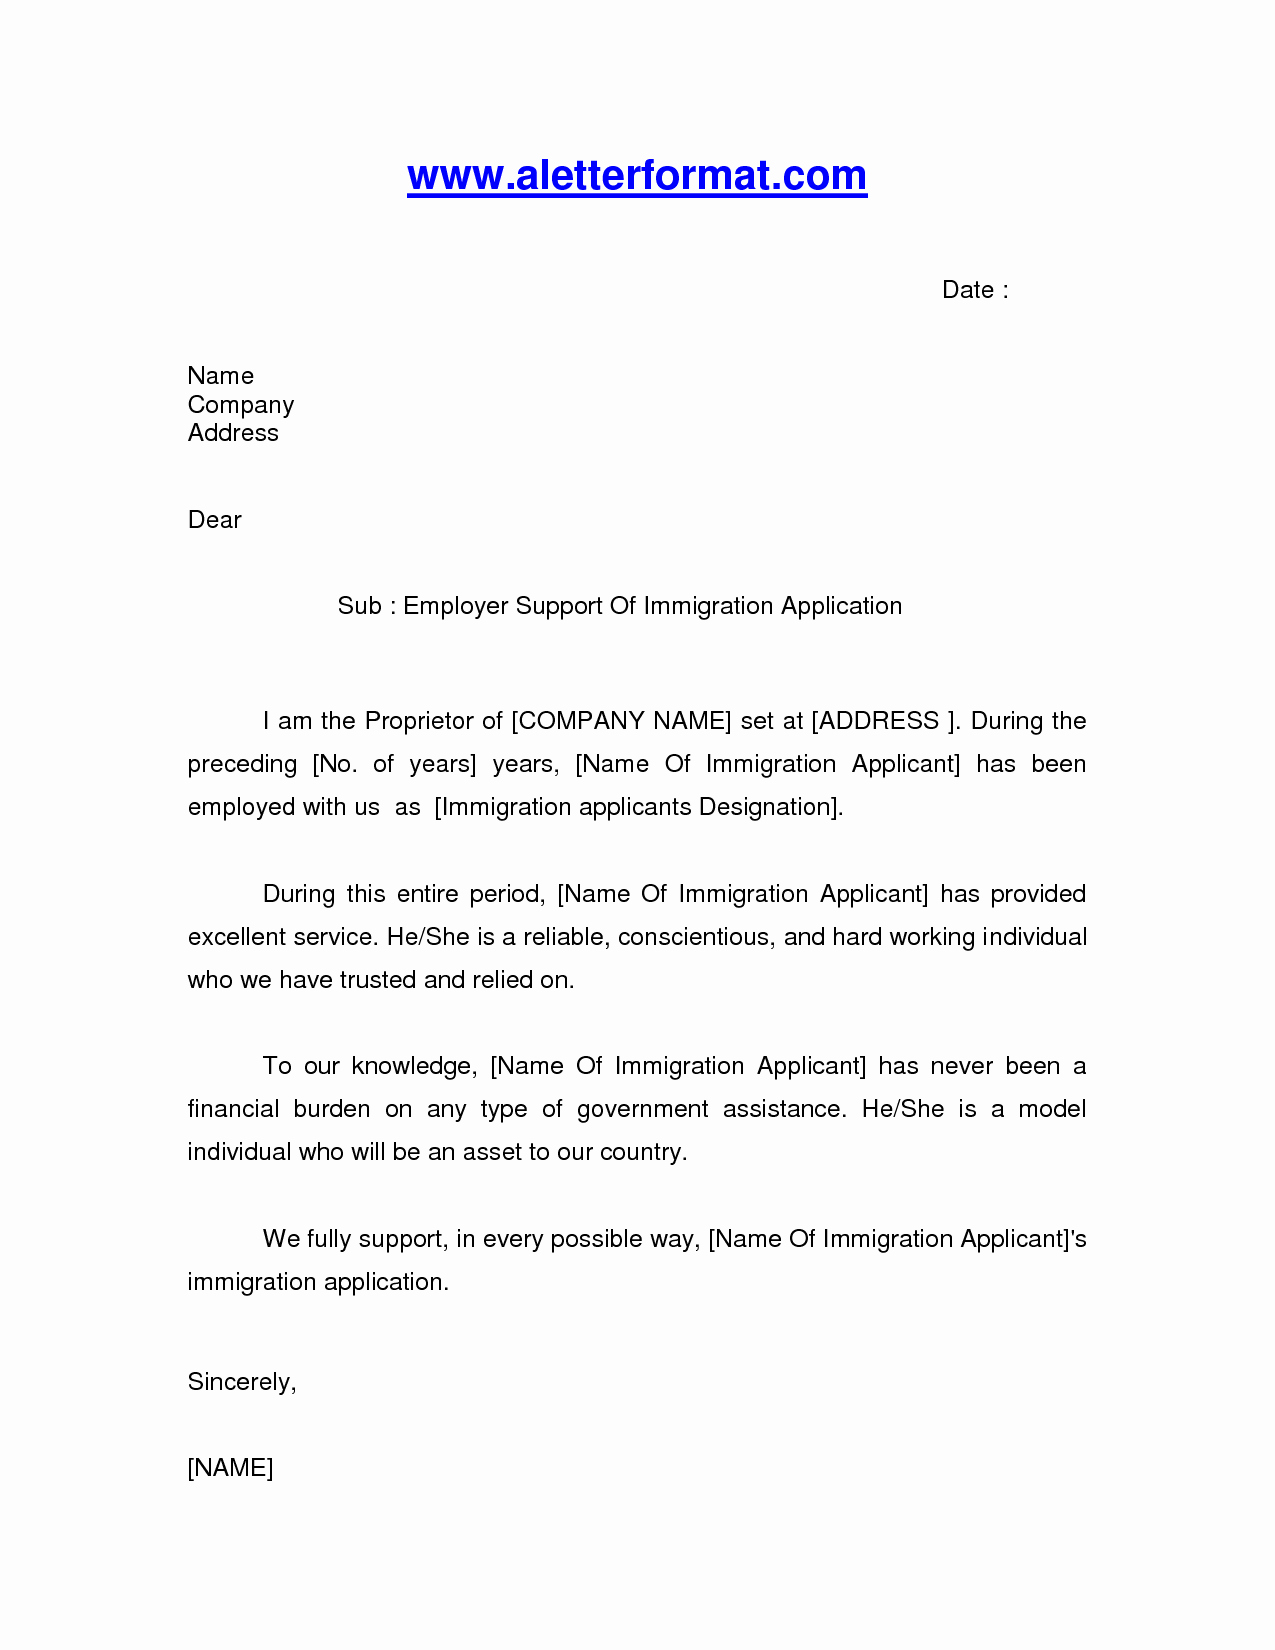 Letters Of Support Templates Elegant Immigration Letter Sample Google Search